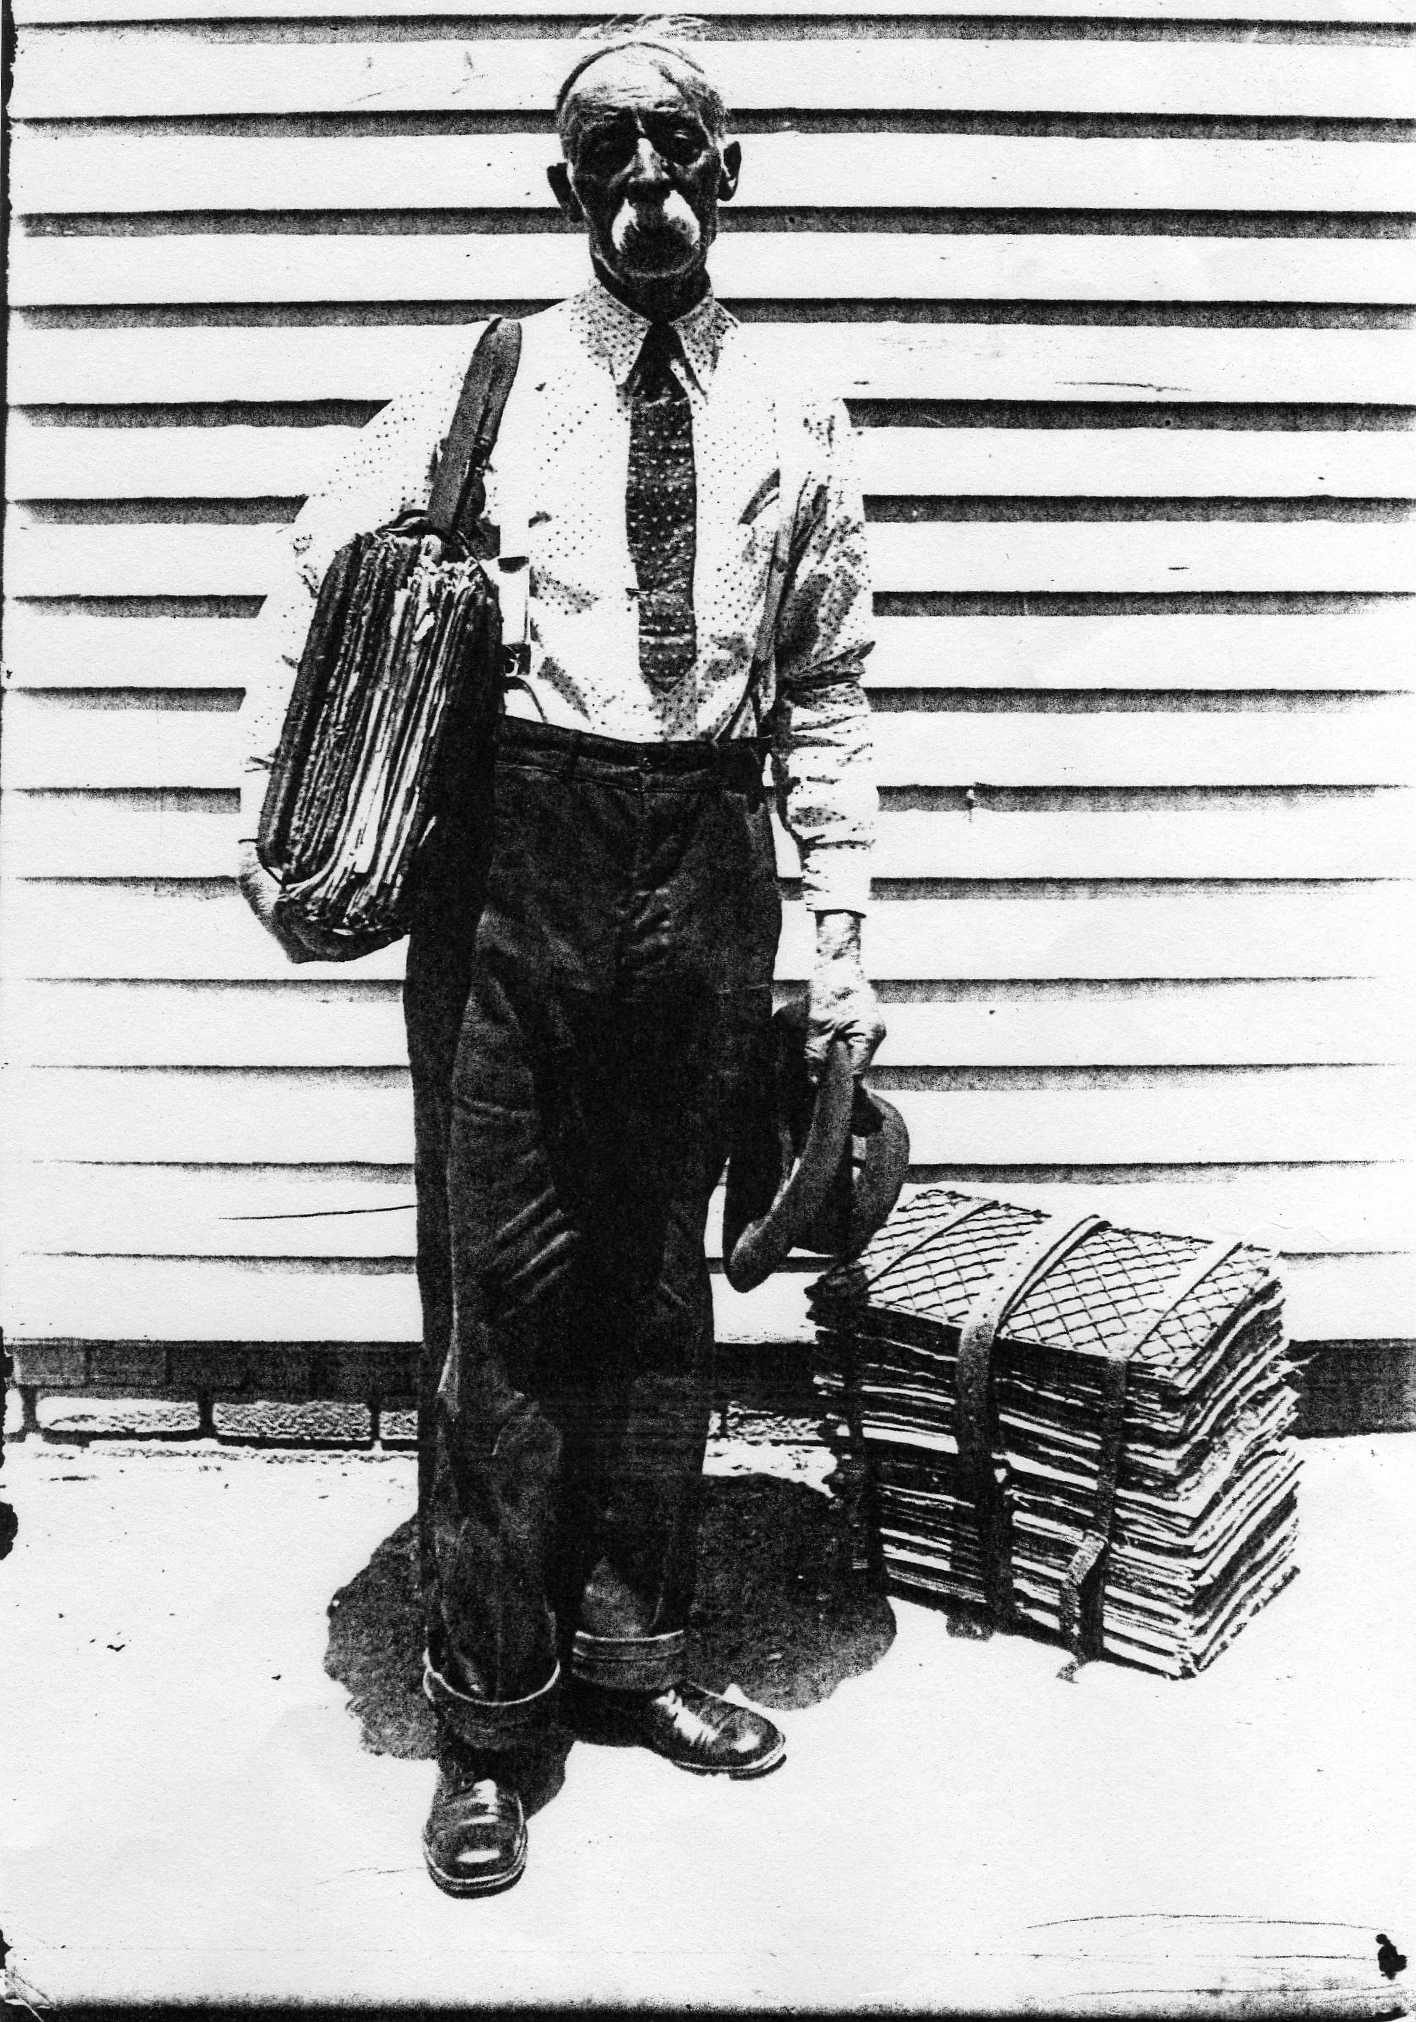 Benjamin F. Bush Sr., taken by J.A. Southern from Examiner about 1930 on south wall of his residence/general store/post office in Courtney, MO.